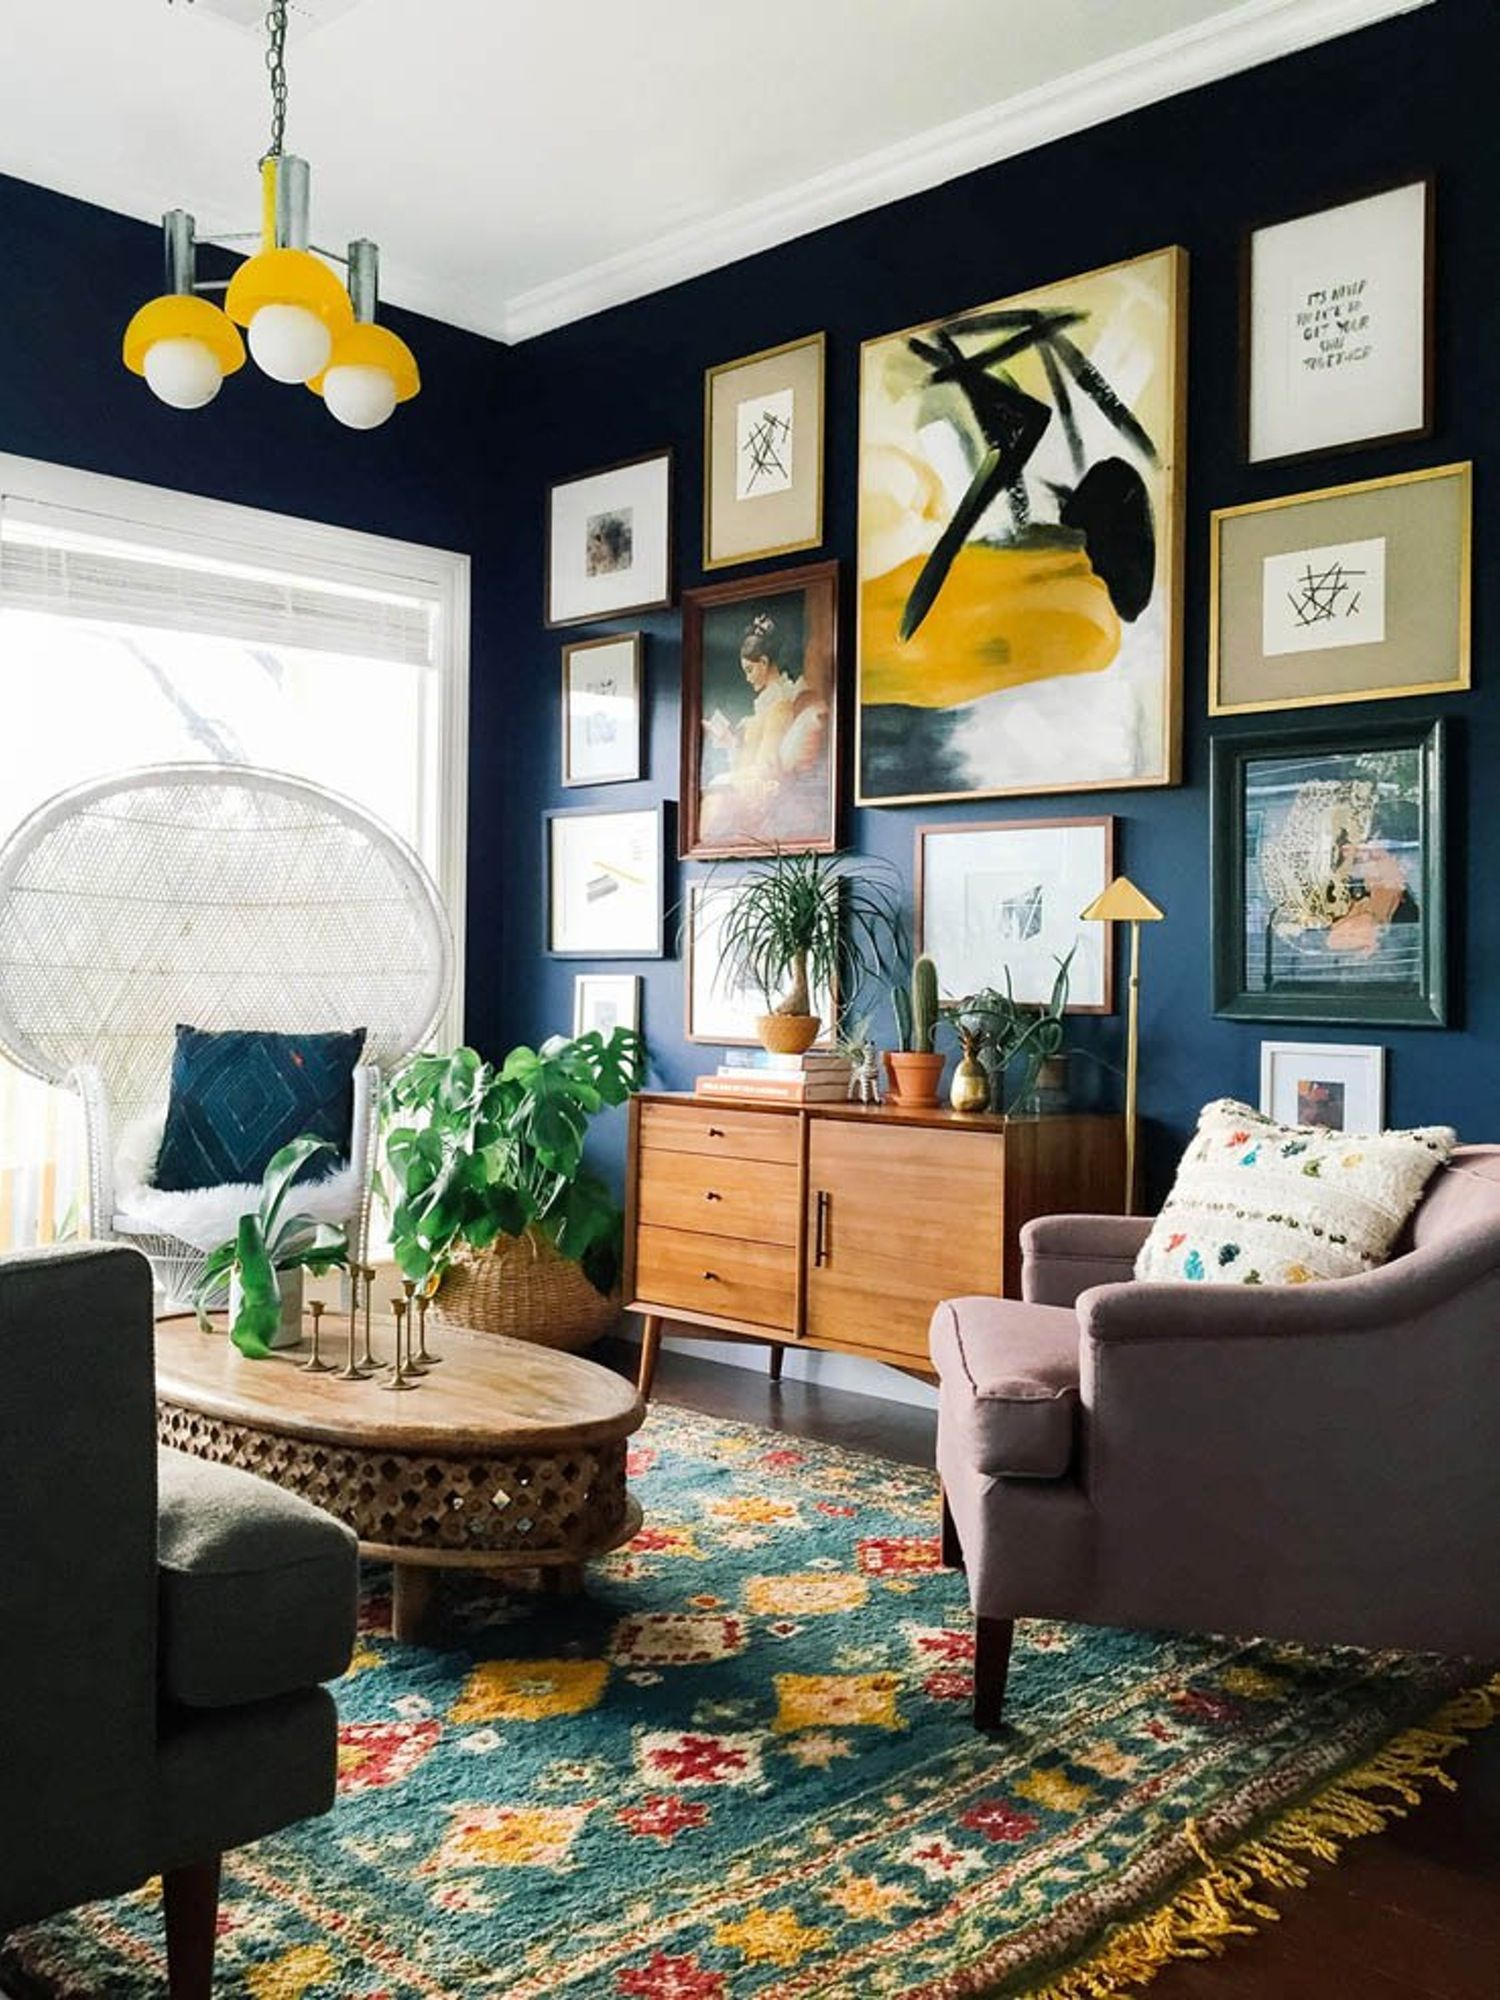 Make Way For Eclectic Home Decor Retro Huisinrichting Woonkamer